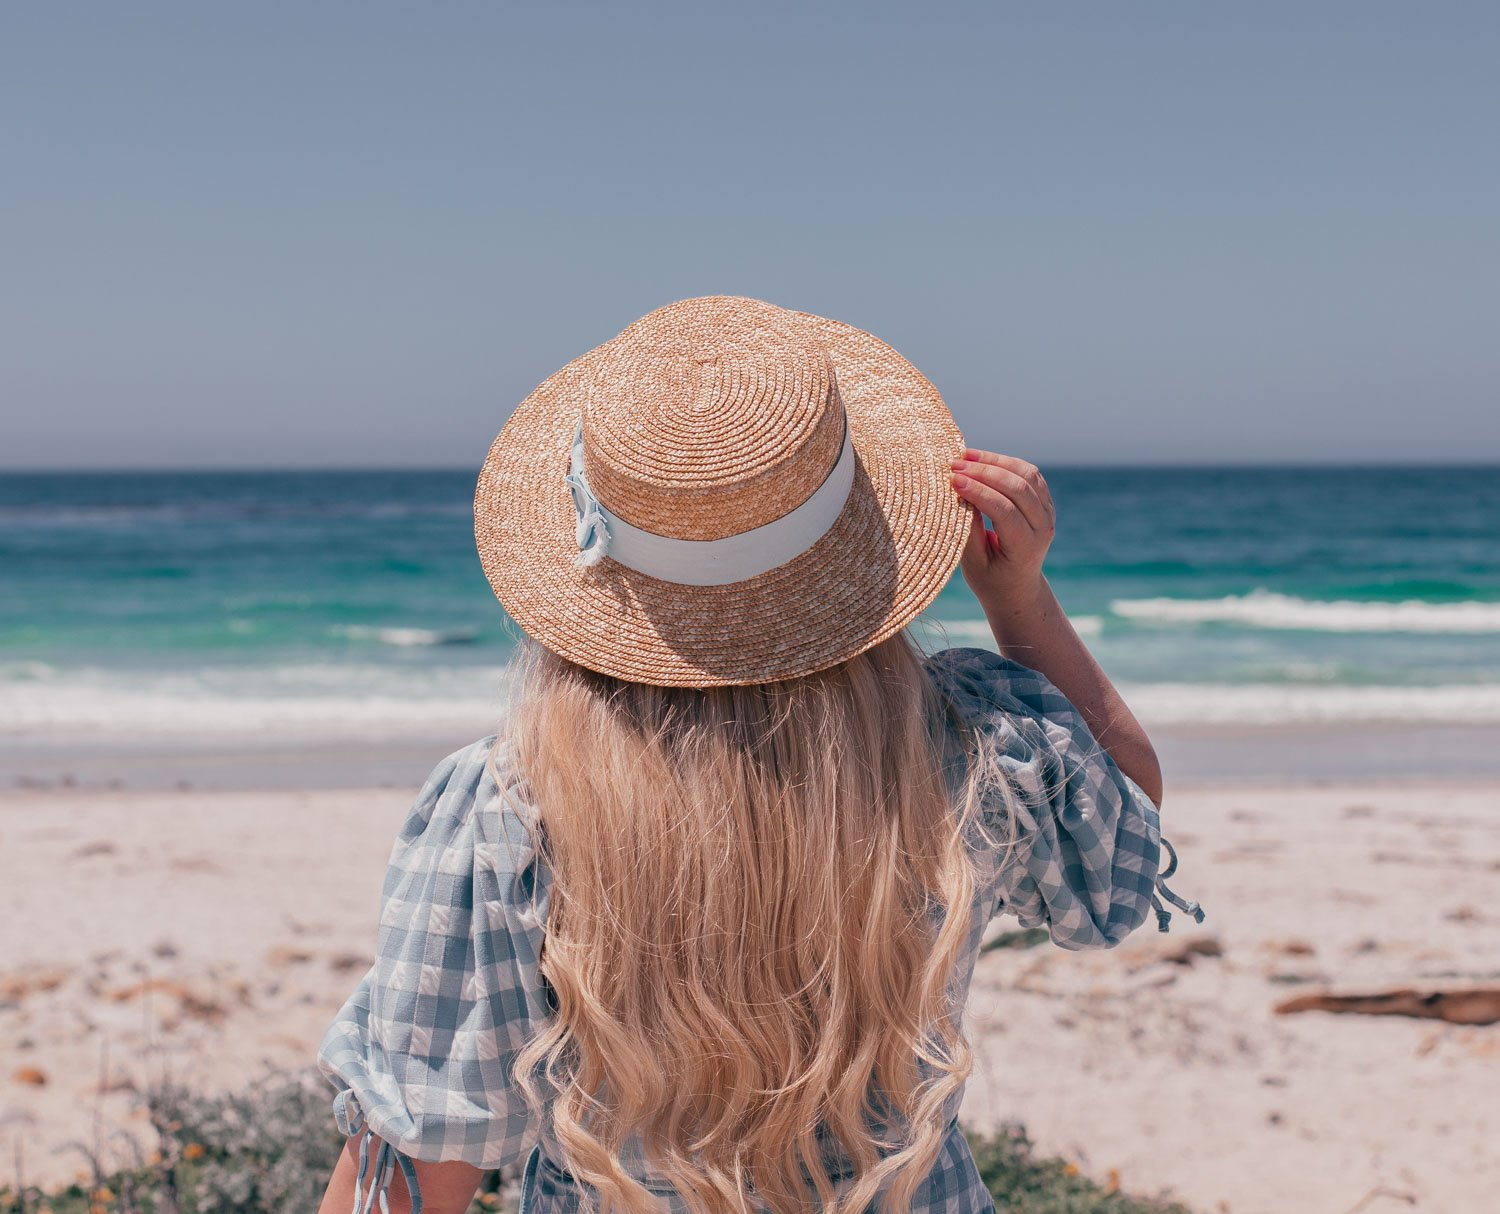 Feminine fashion blogger Elizabeth Hugen of Lizzie in Lace shares 3 Feminine Summer Hair Accessories to Wear Now including this gorgeous feminine boater hat